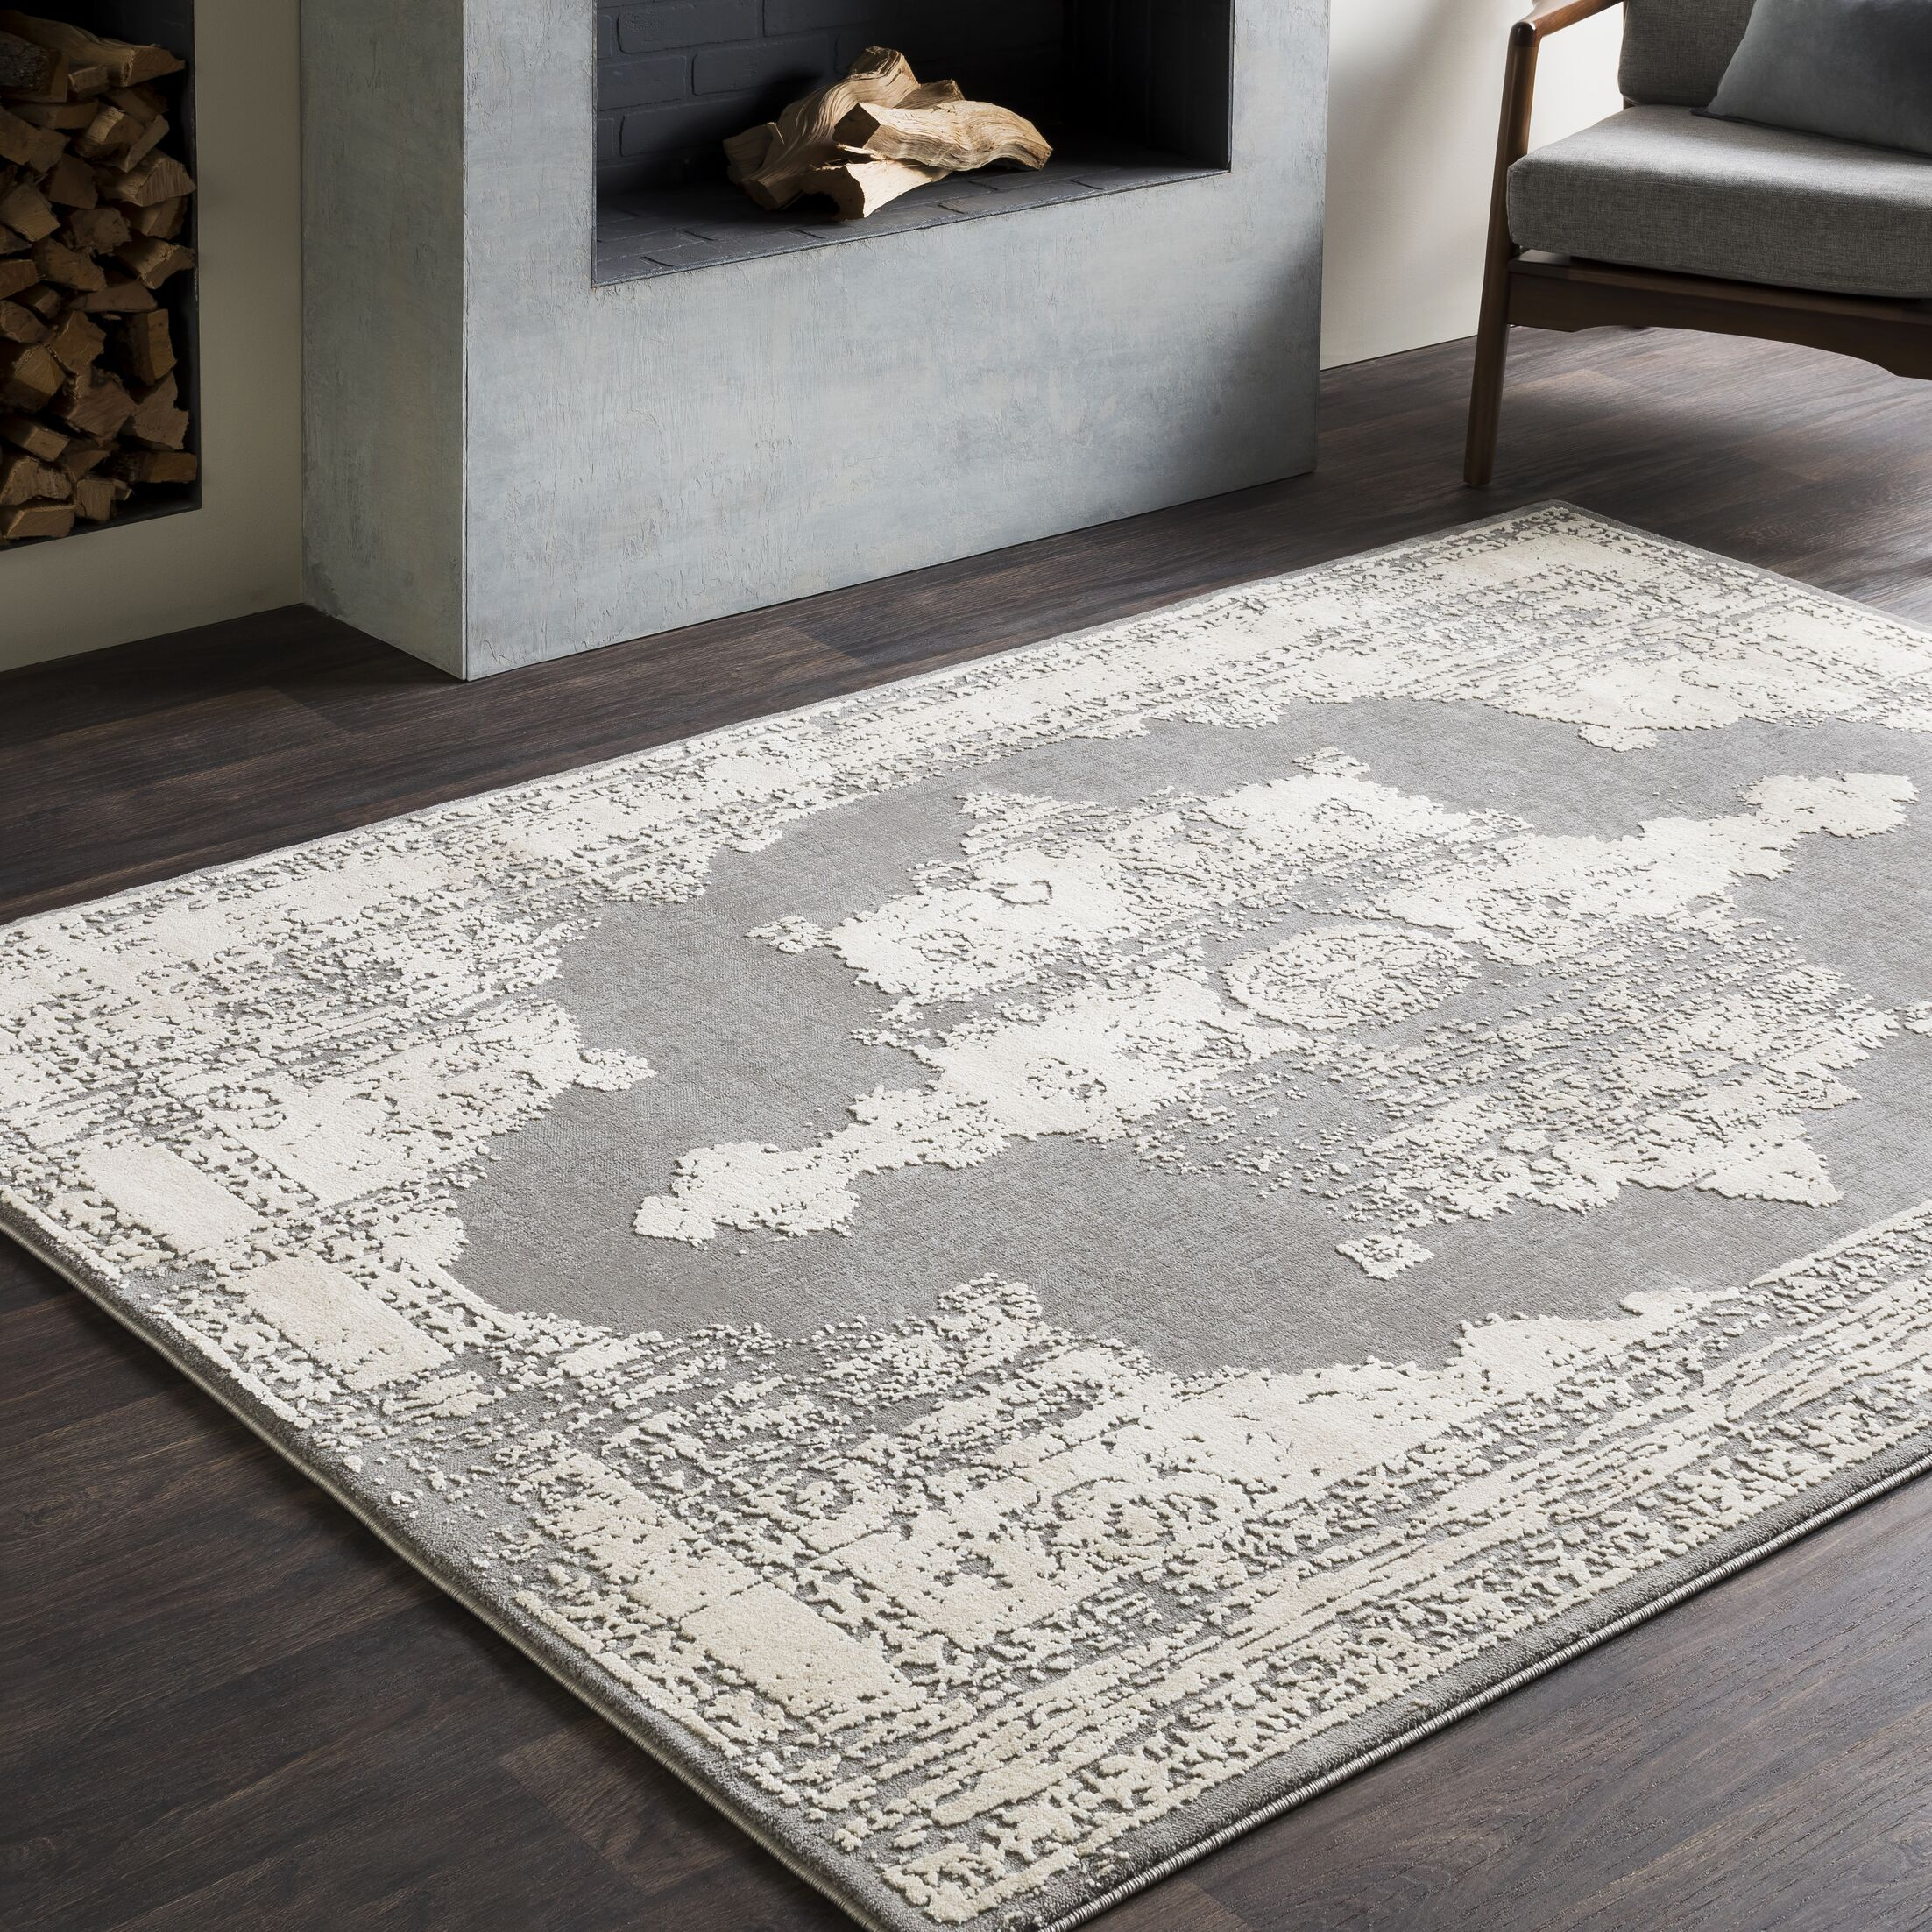 Tilleul Distressed Persian Medallion Gray Area Rug Rug Size: Rectangle 9'3